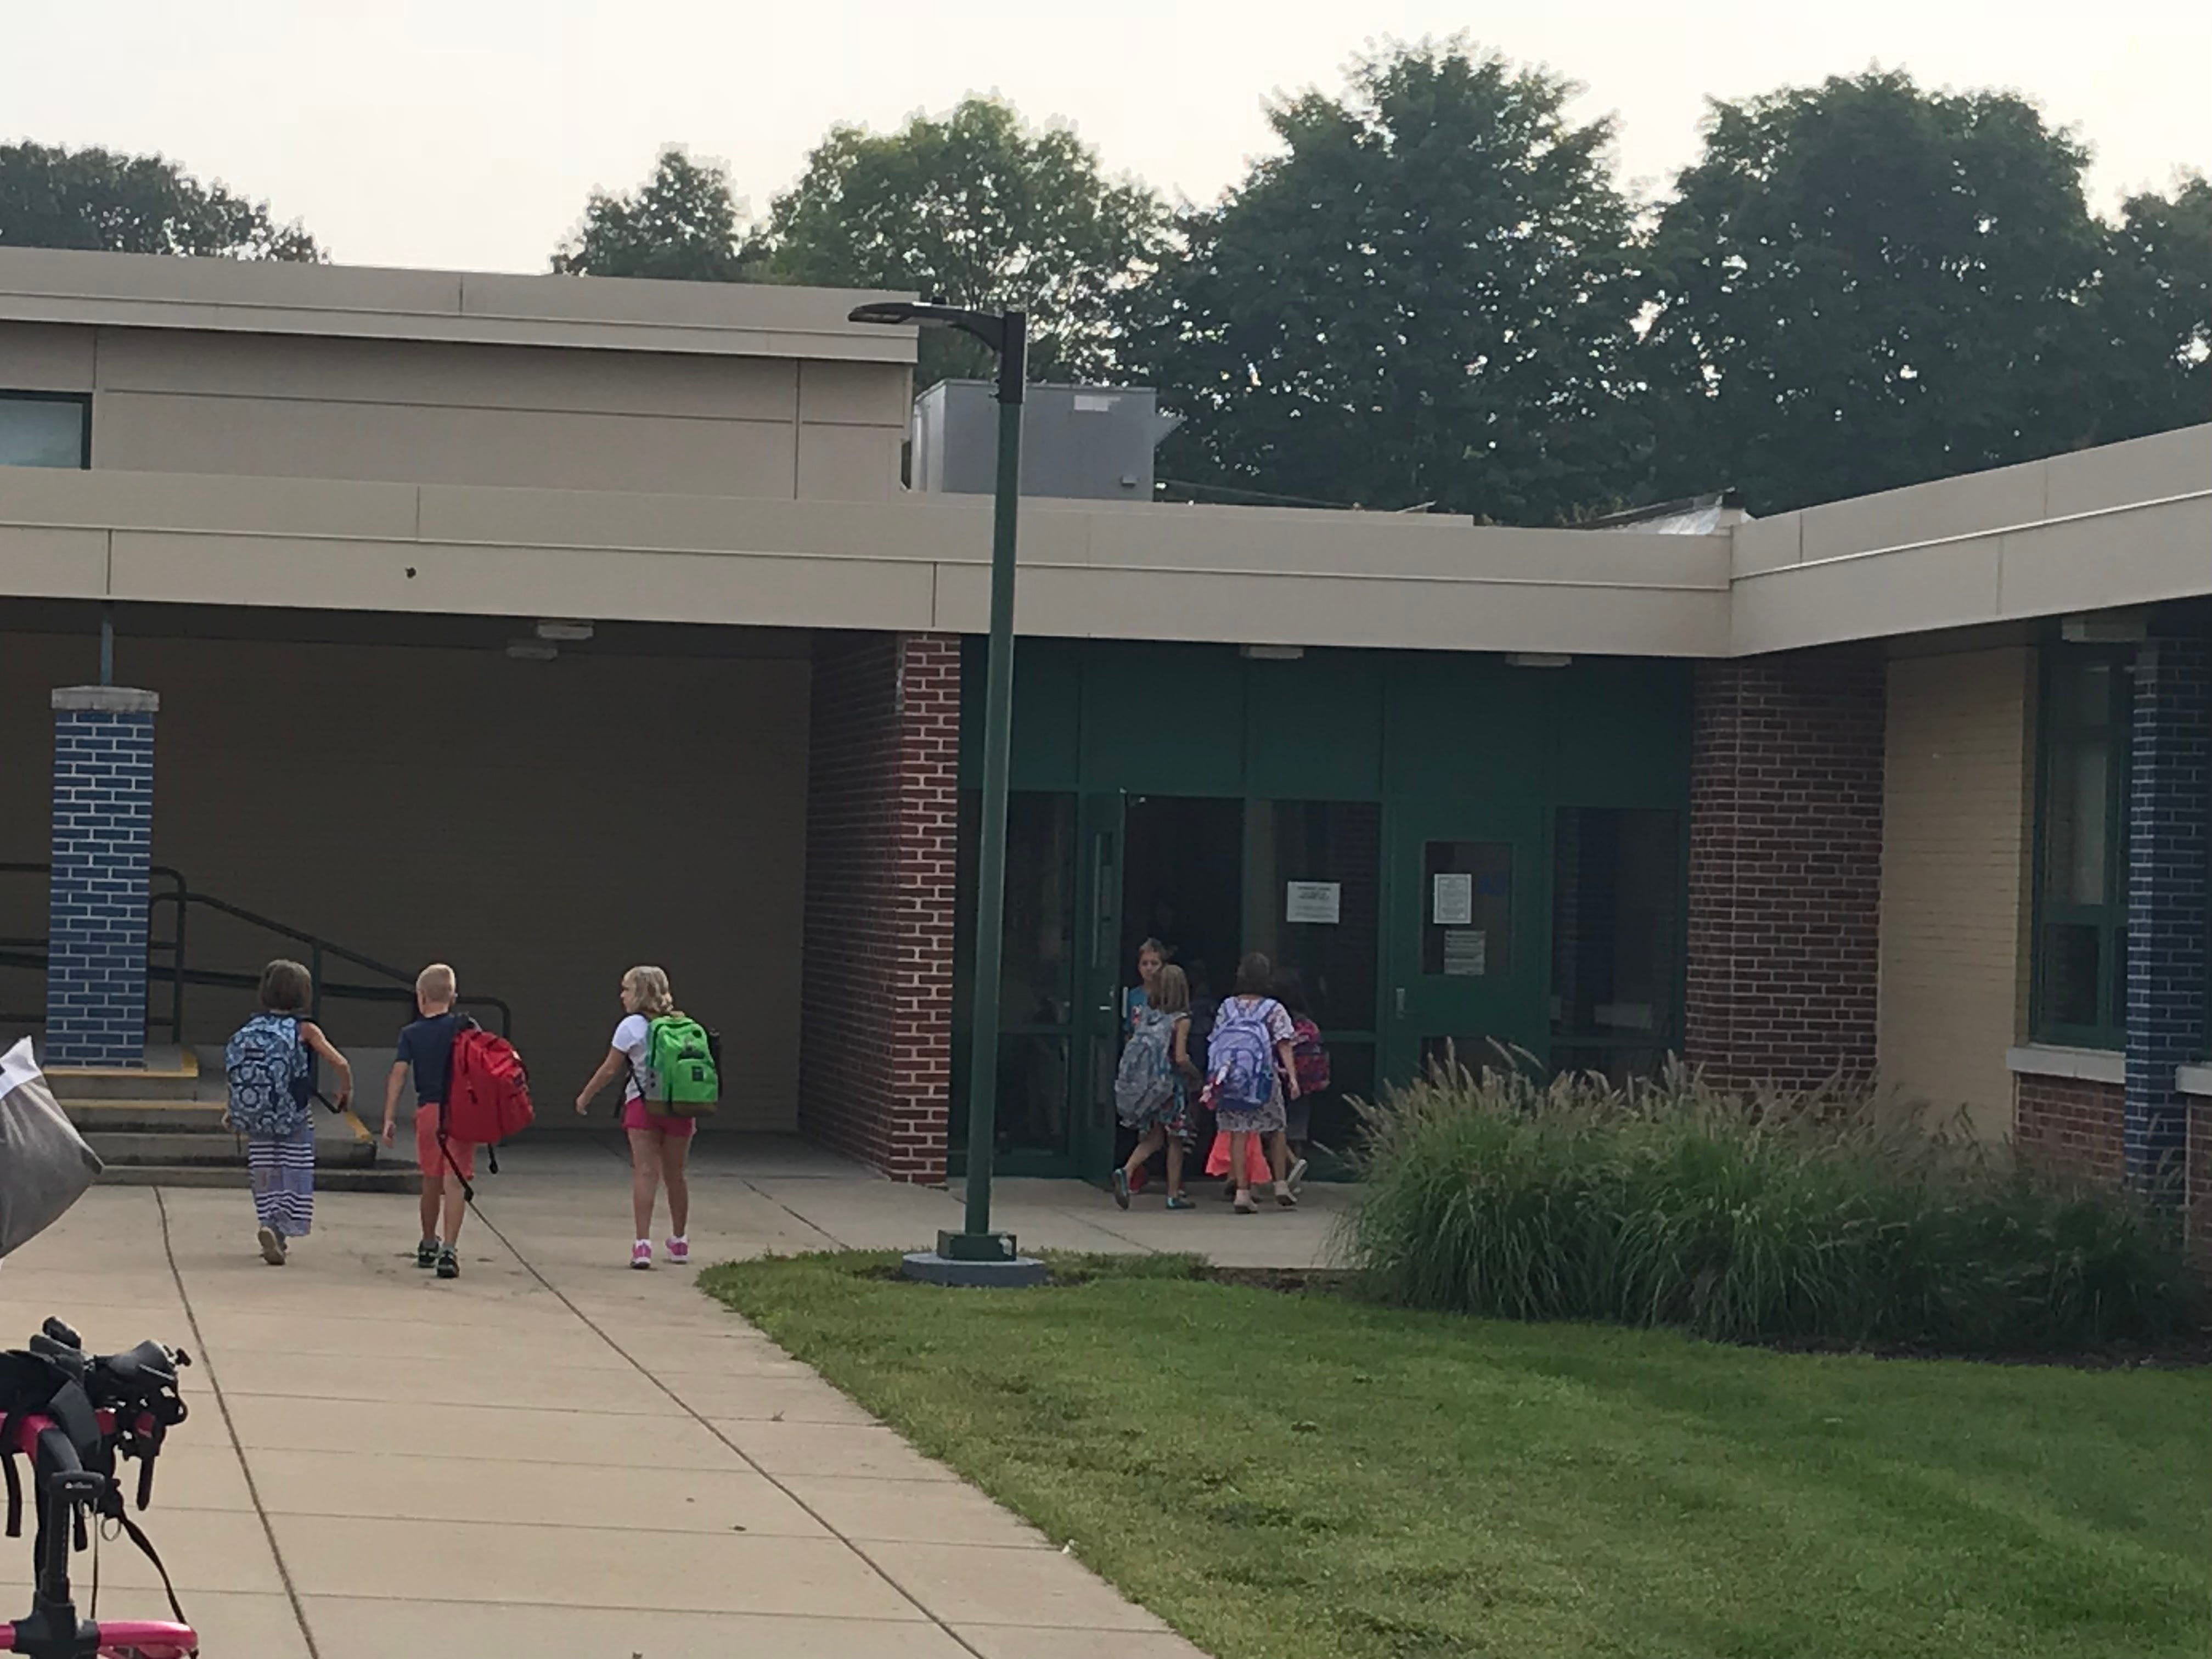 Students enter Pine Street Elementary School in Palmyra for their first day of school.